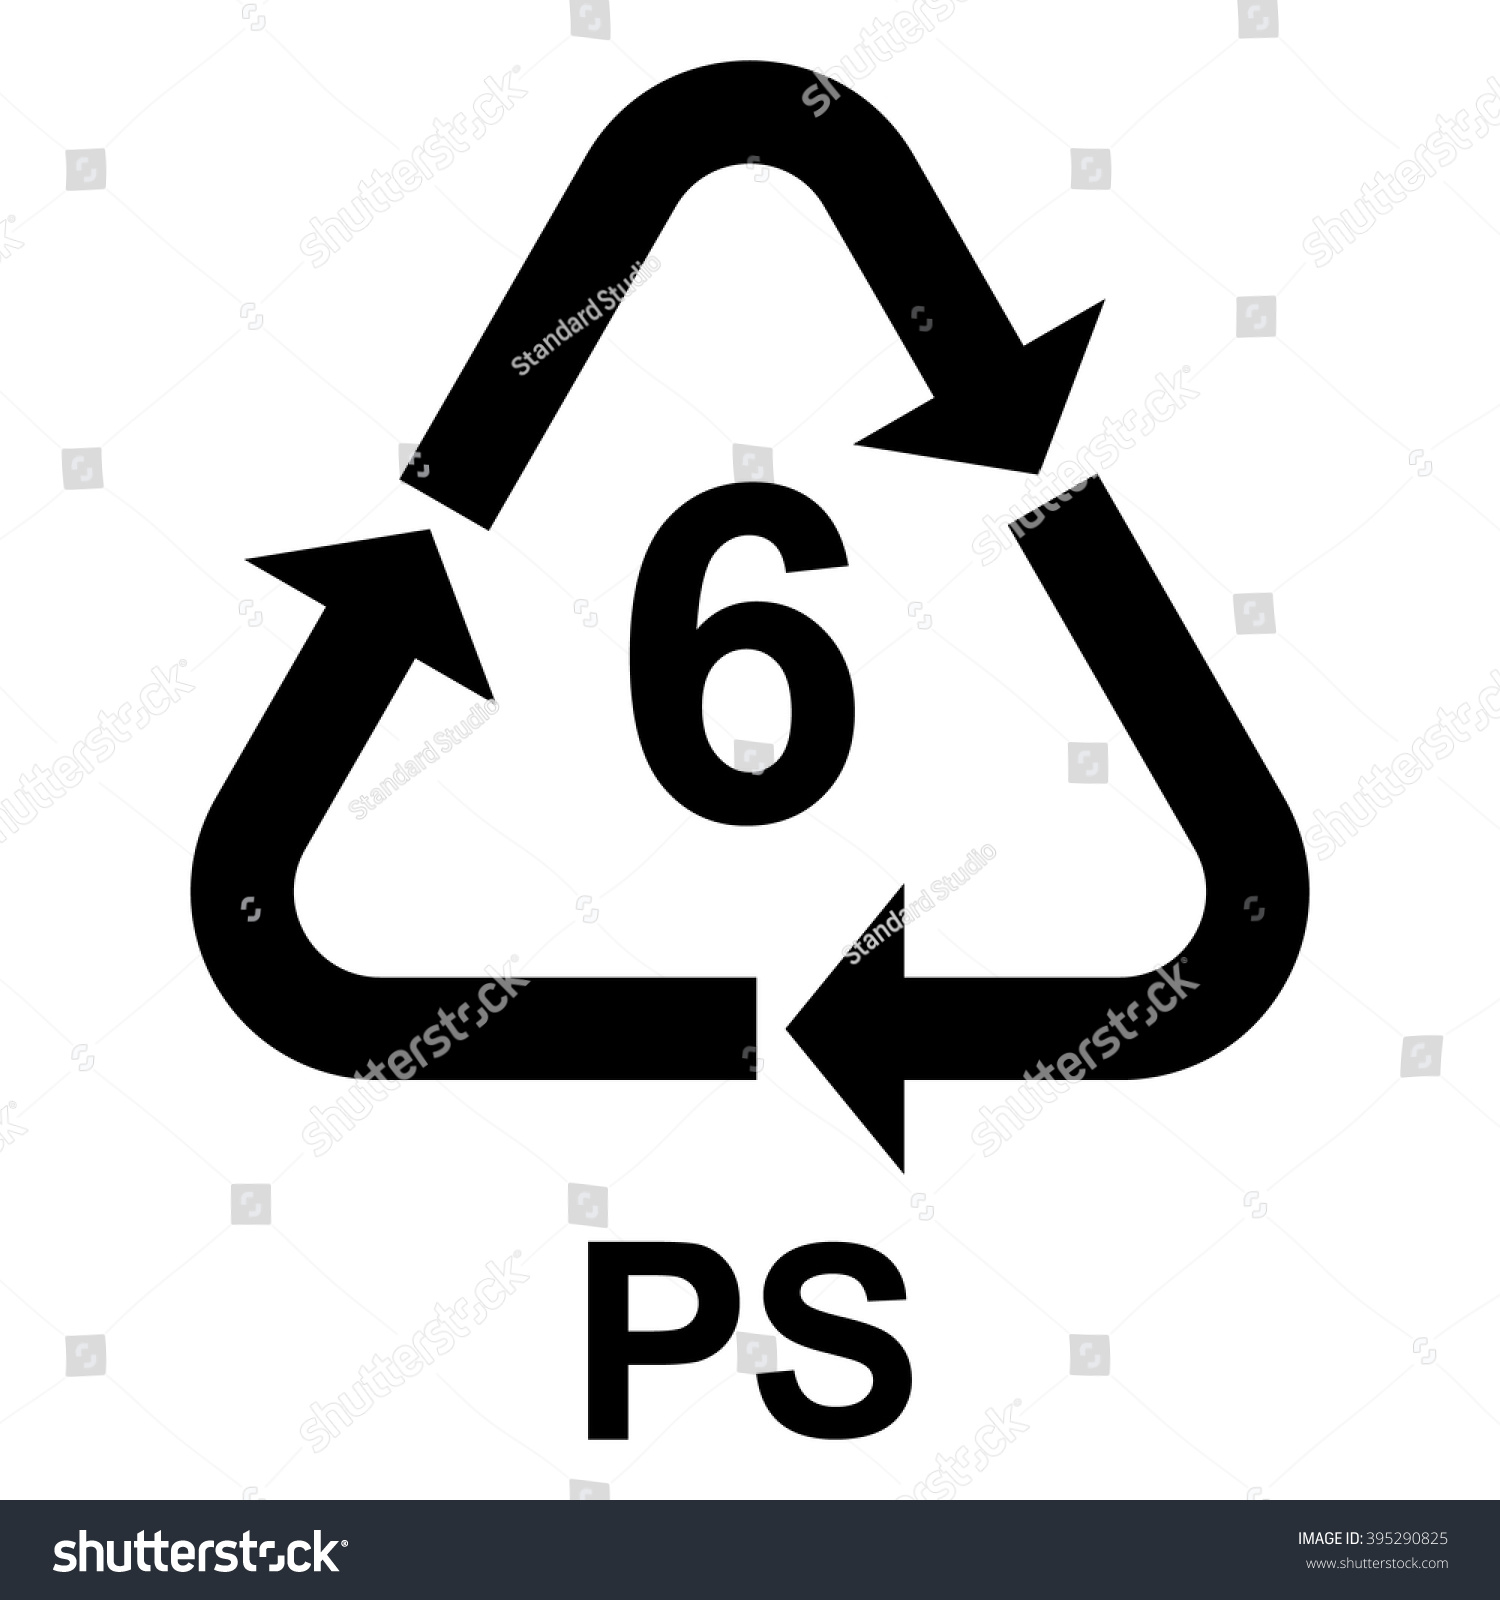 Plastic Recycling Symbol Ps 6 Plastic Stock Vector Royalty Free